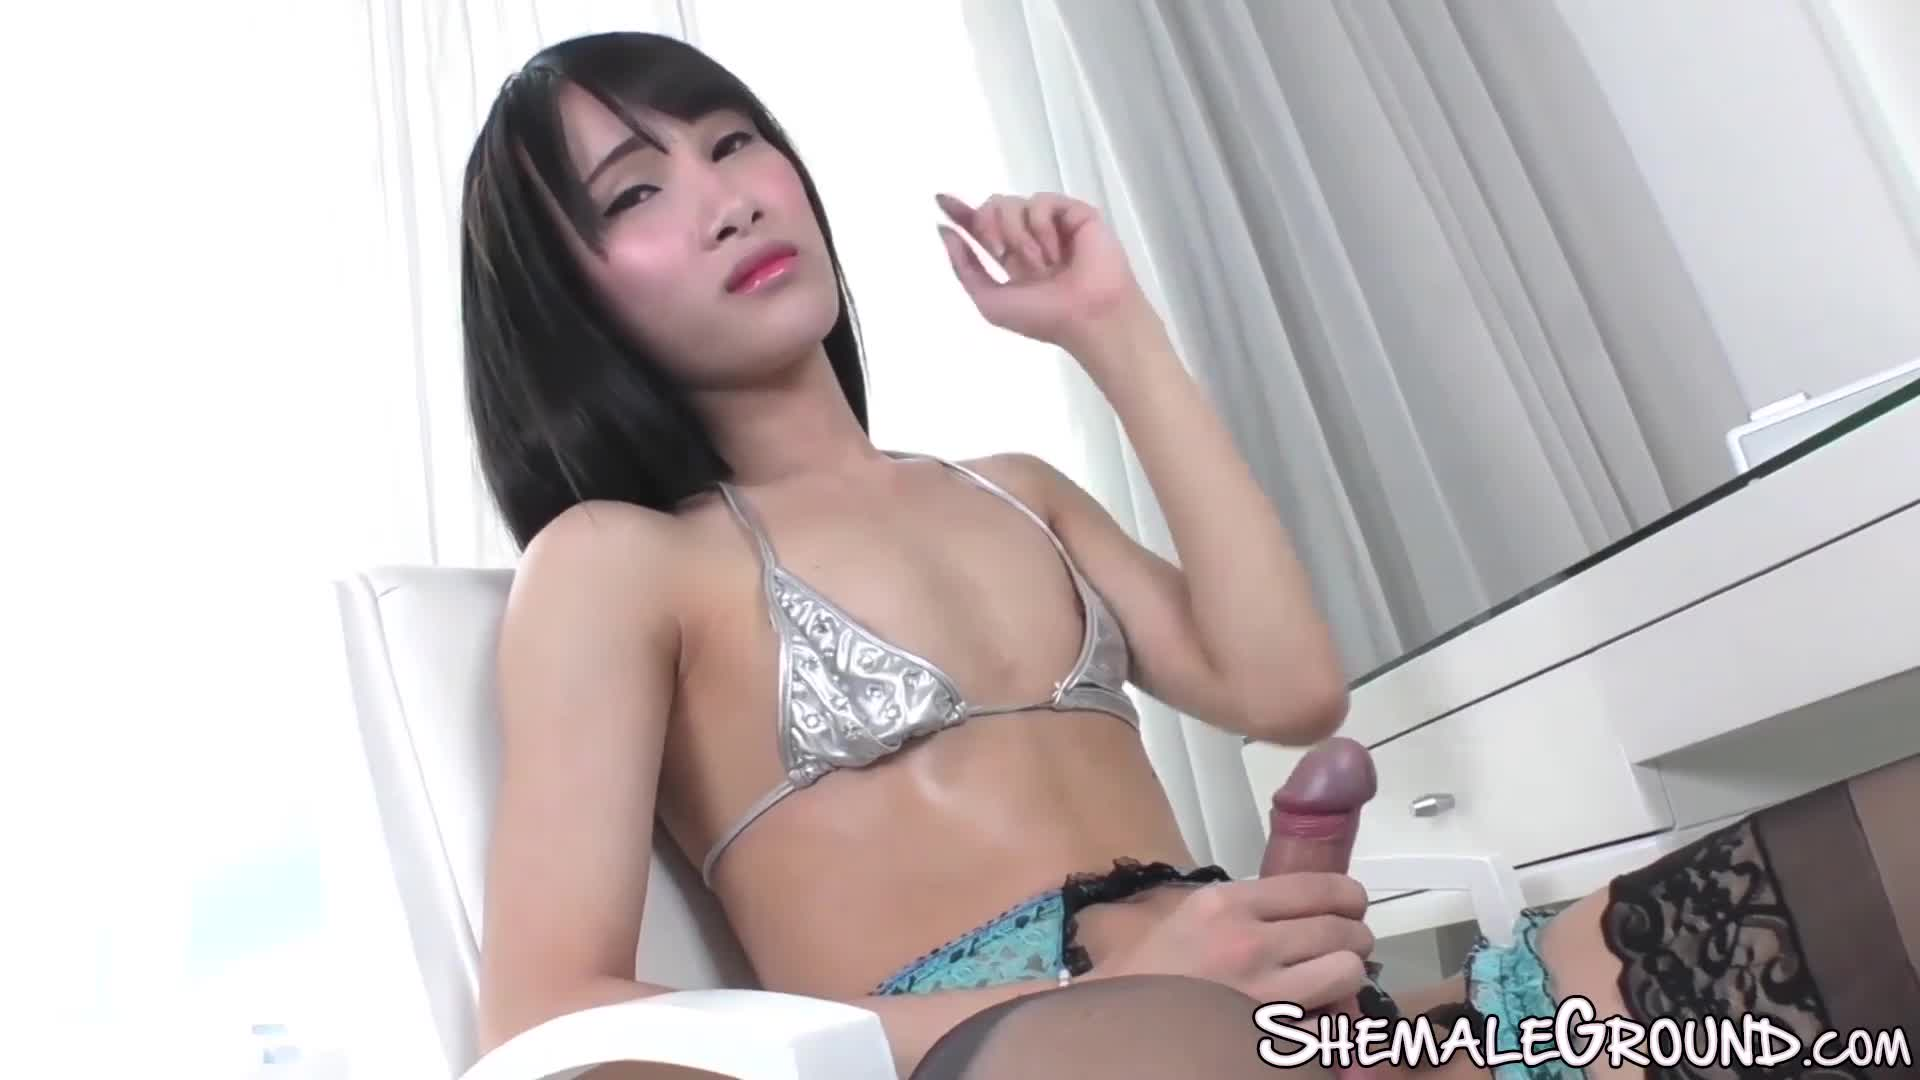 Asian shemale with small tits and big dick impales her lover